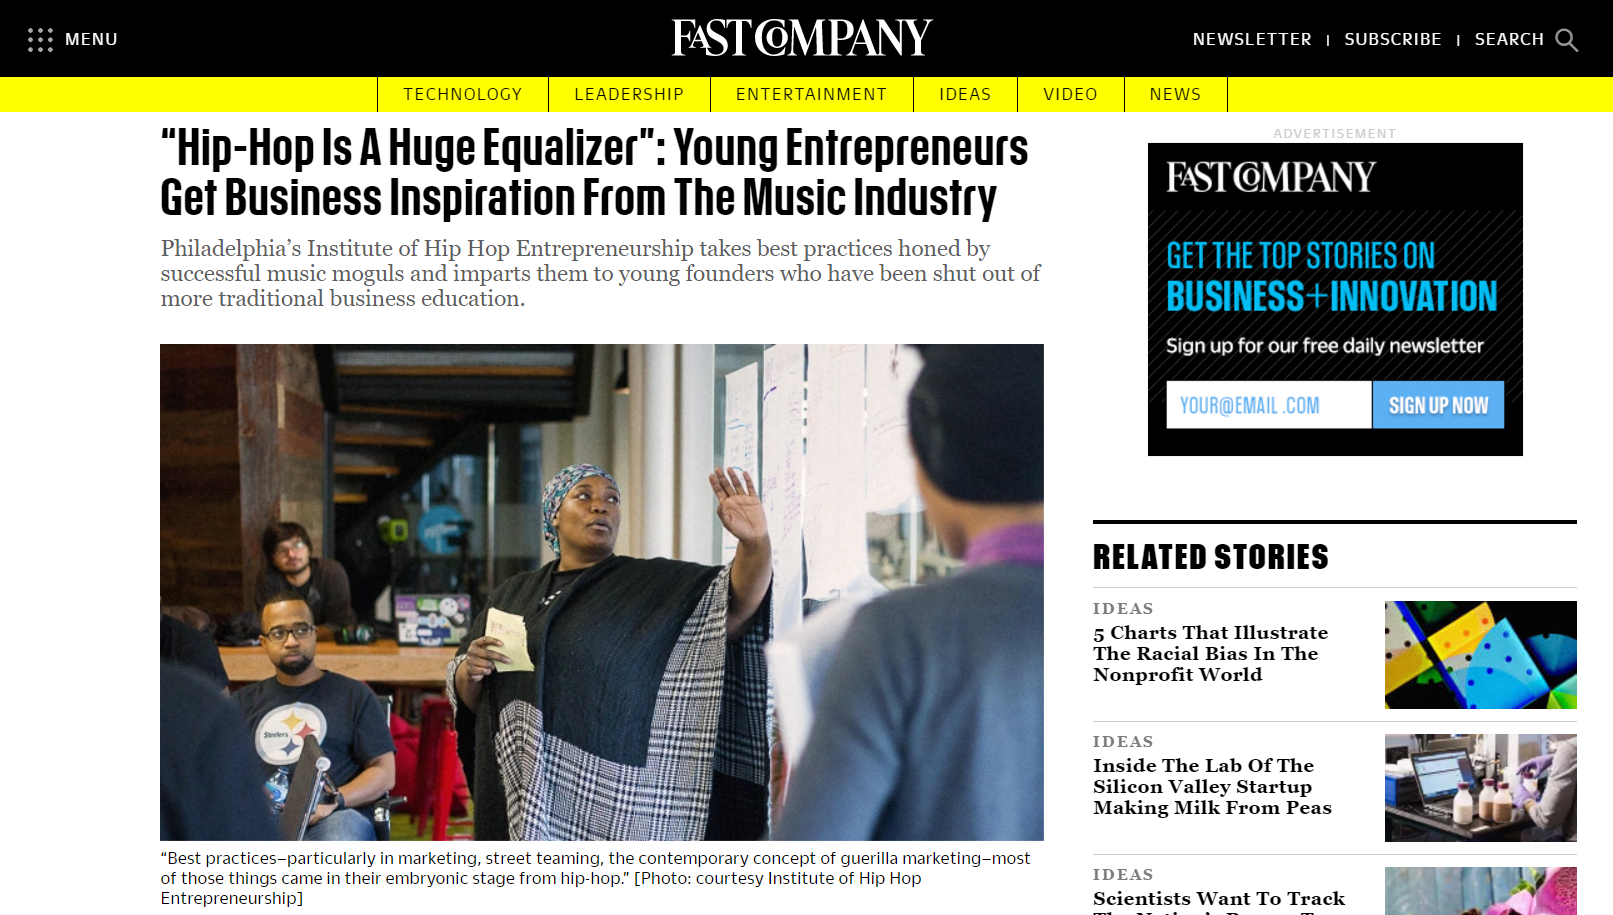 fastcompany press